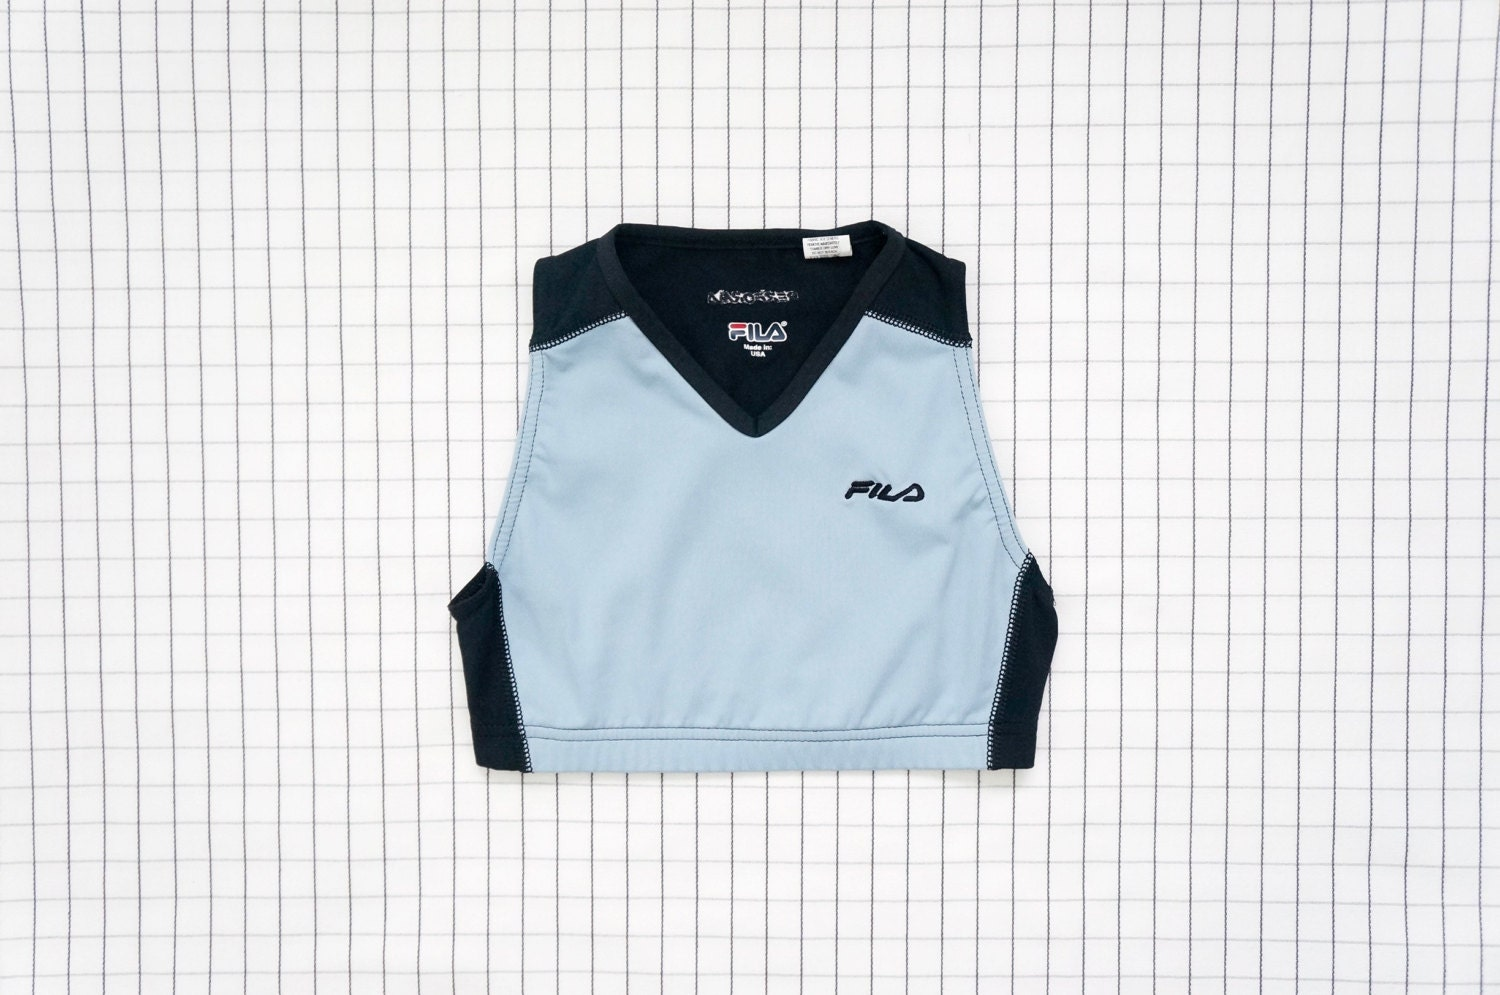 Aesthetic Vintage Clothing: 90's Crop Top FILA Aesthetic Bra Top Baby Blue Sports